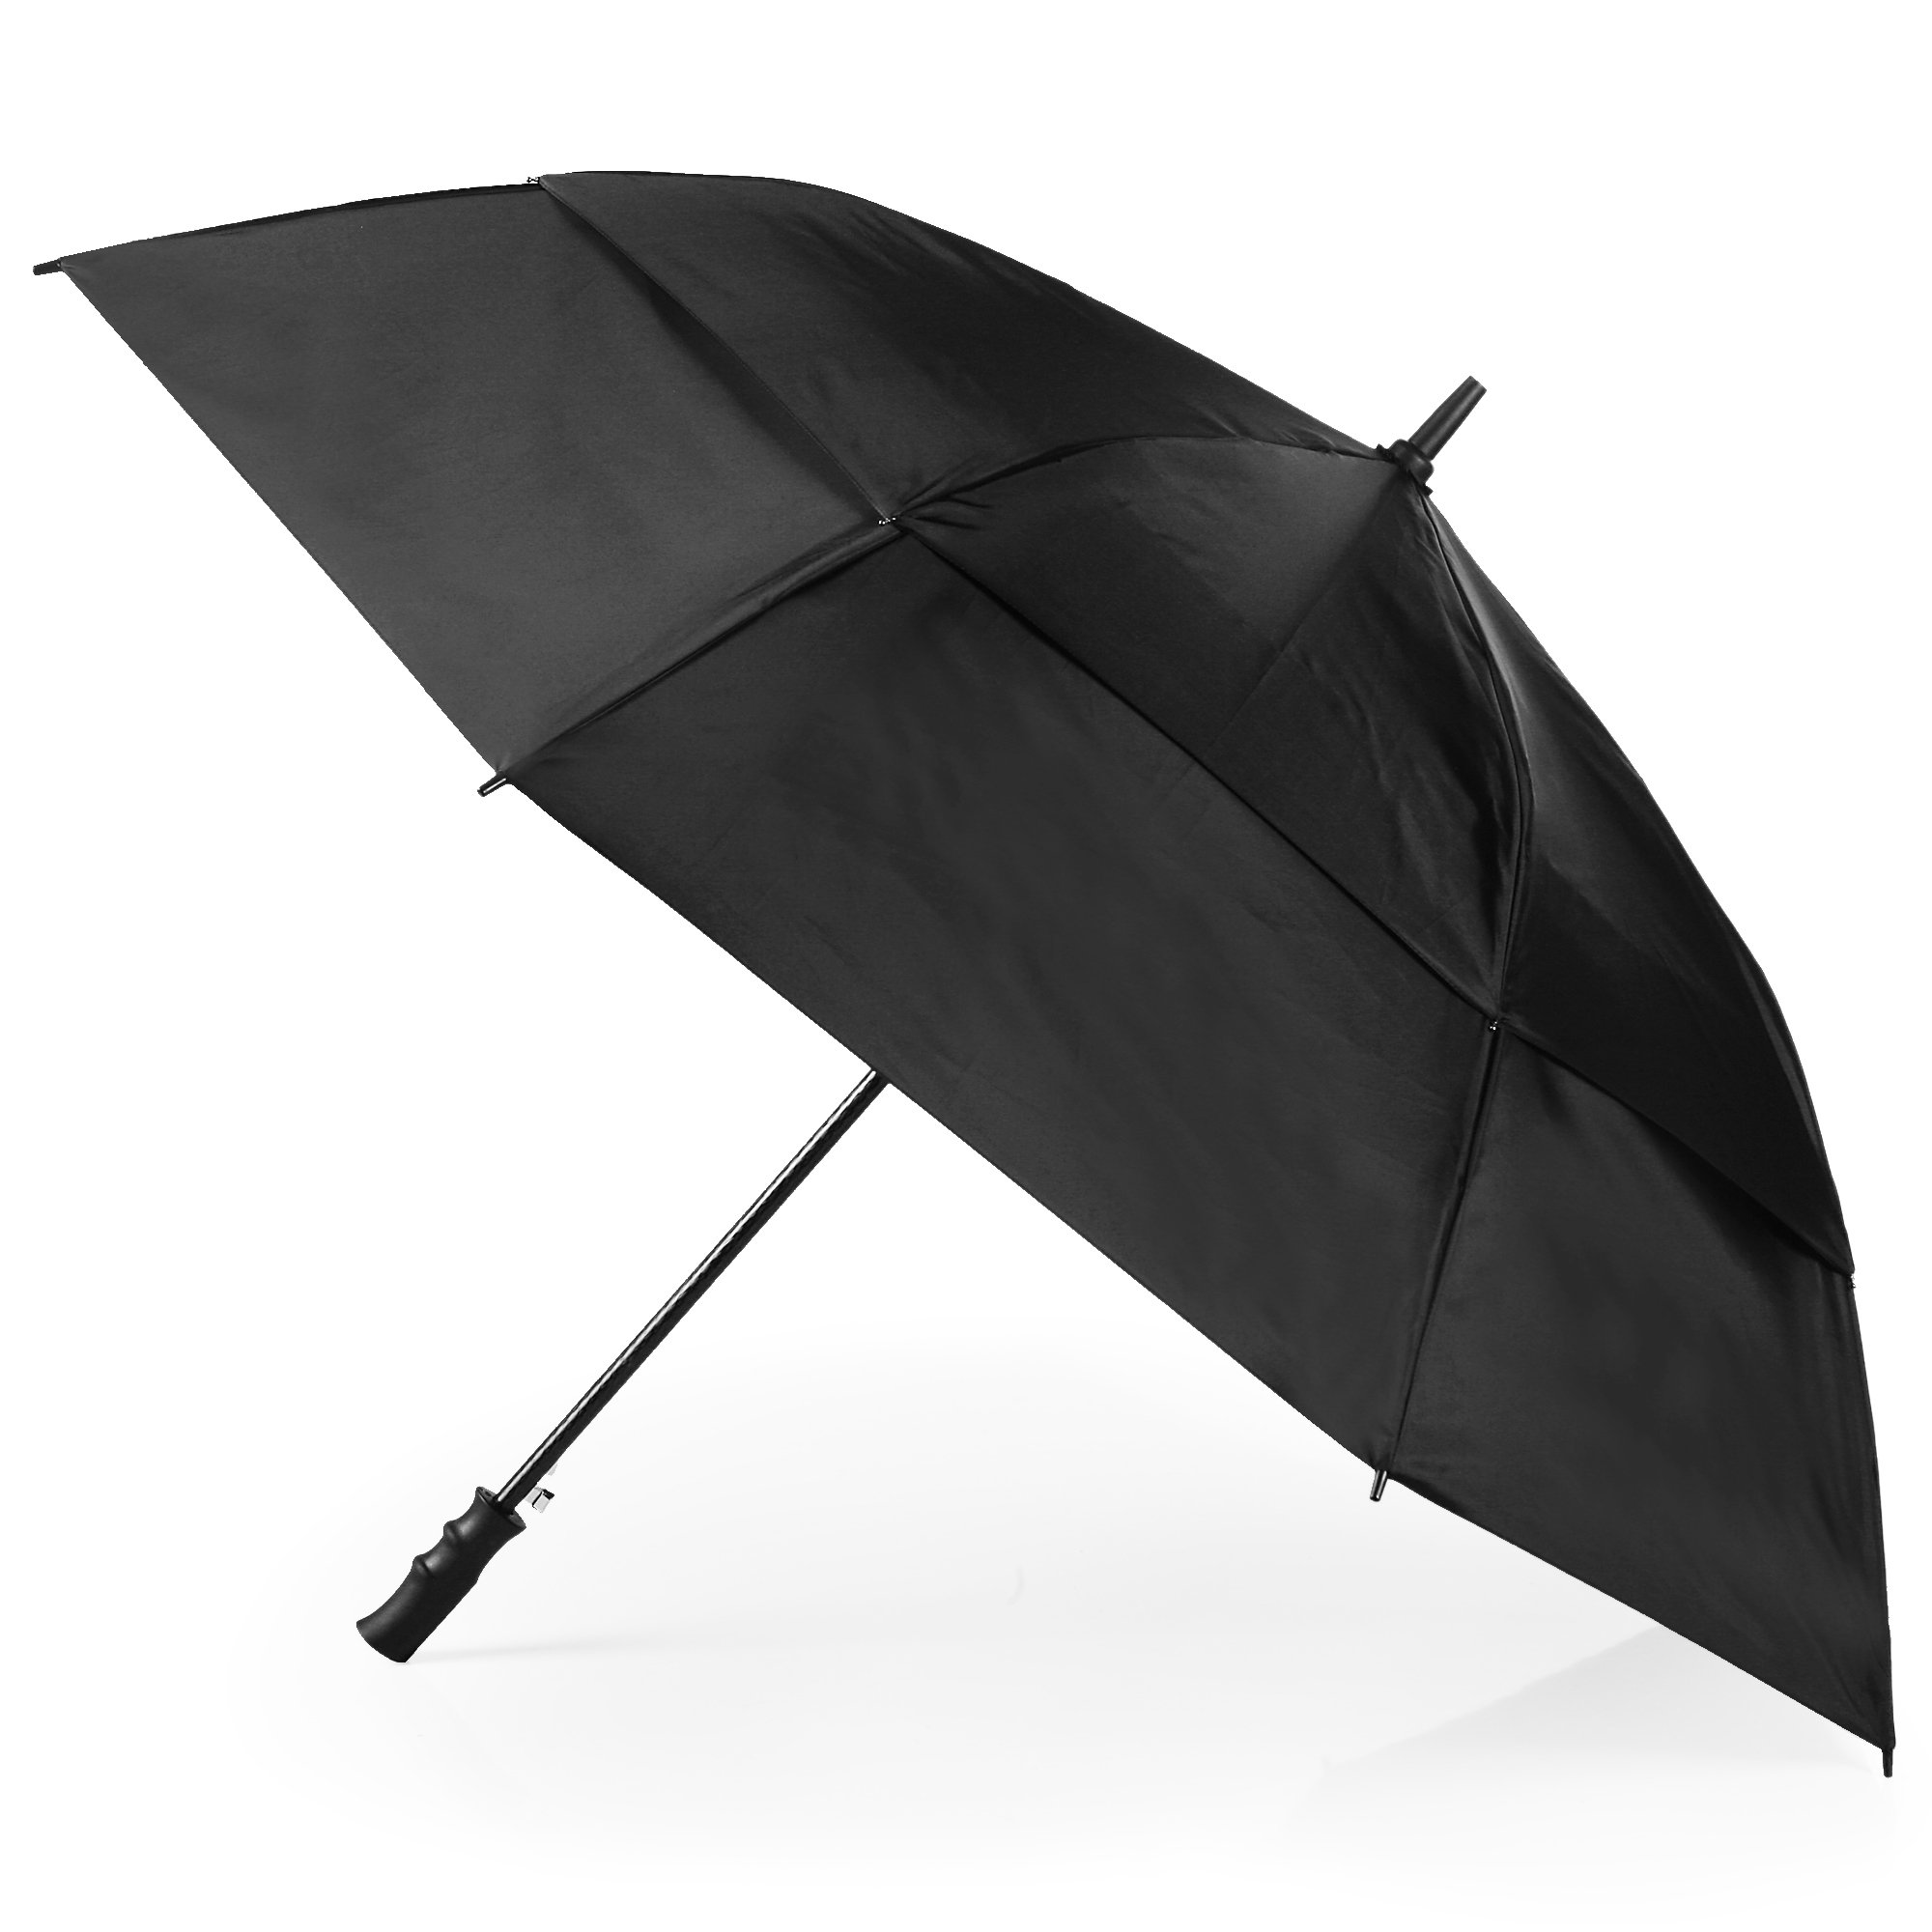 totes Automatic Open Windproof & Water-Resistant Golf Umbrella by totes